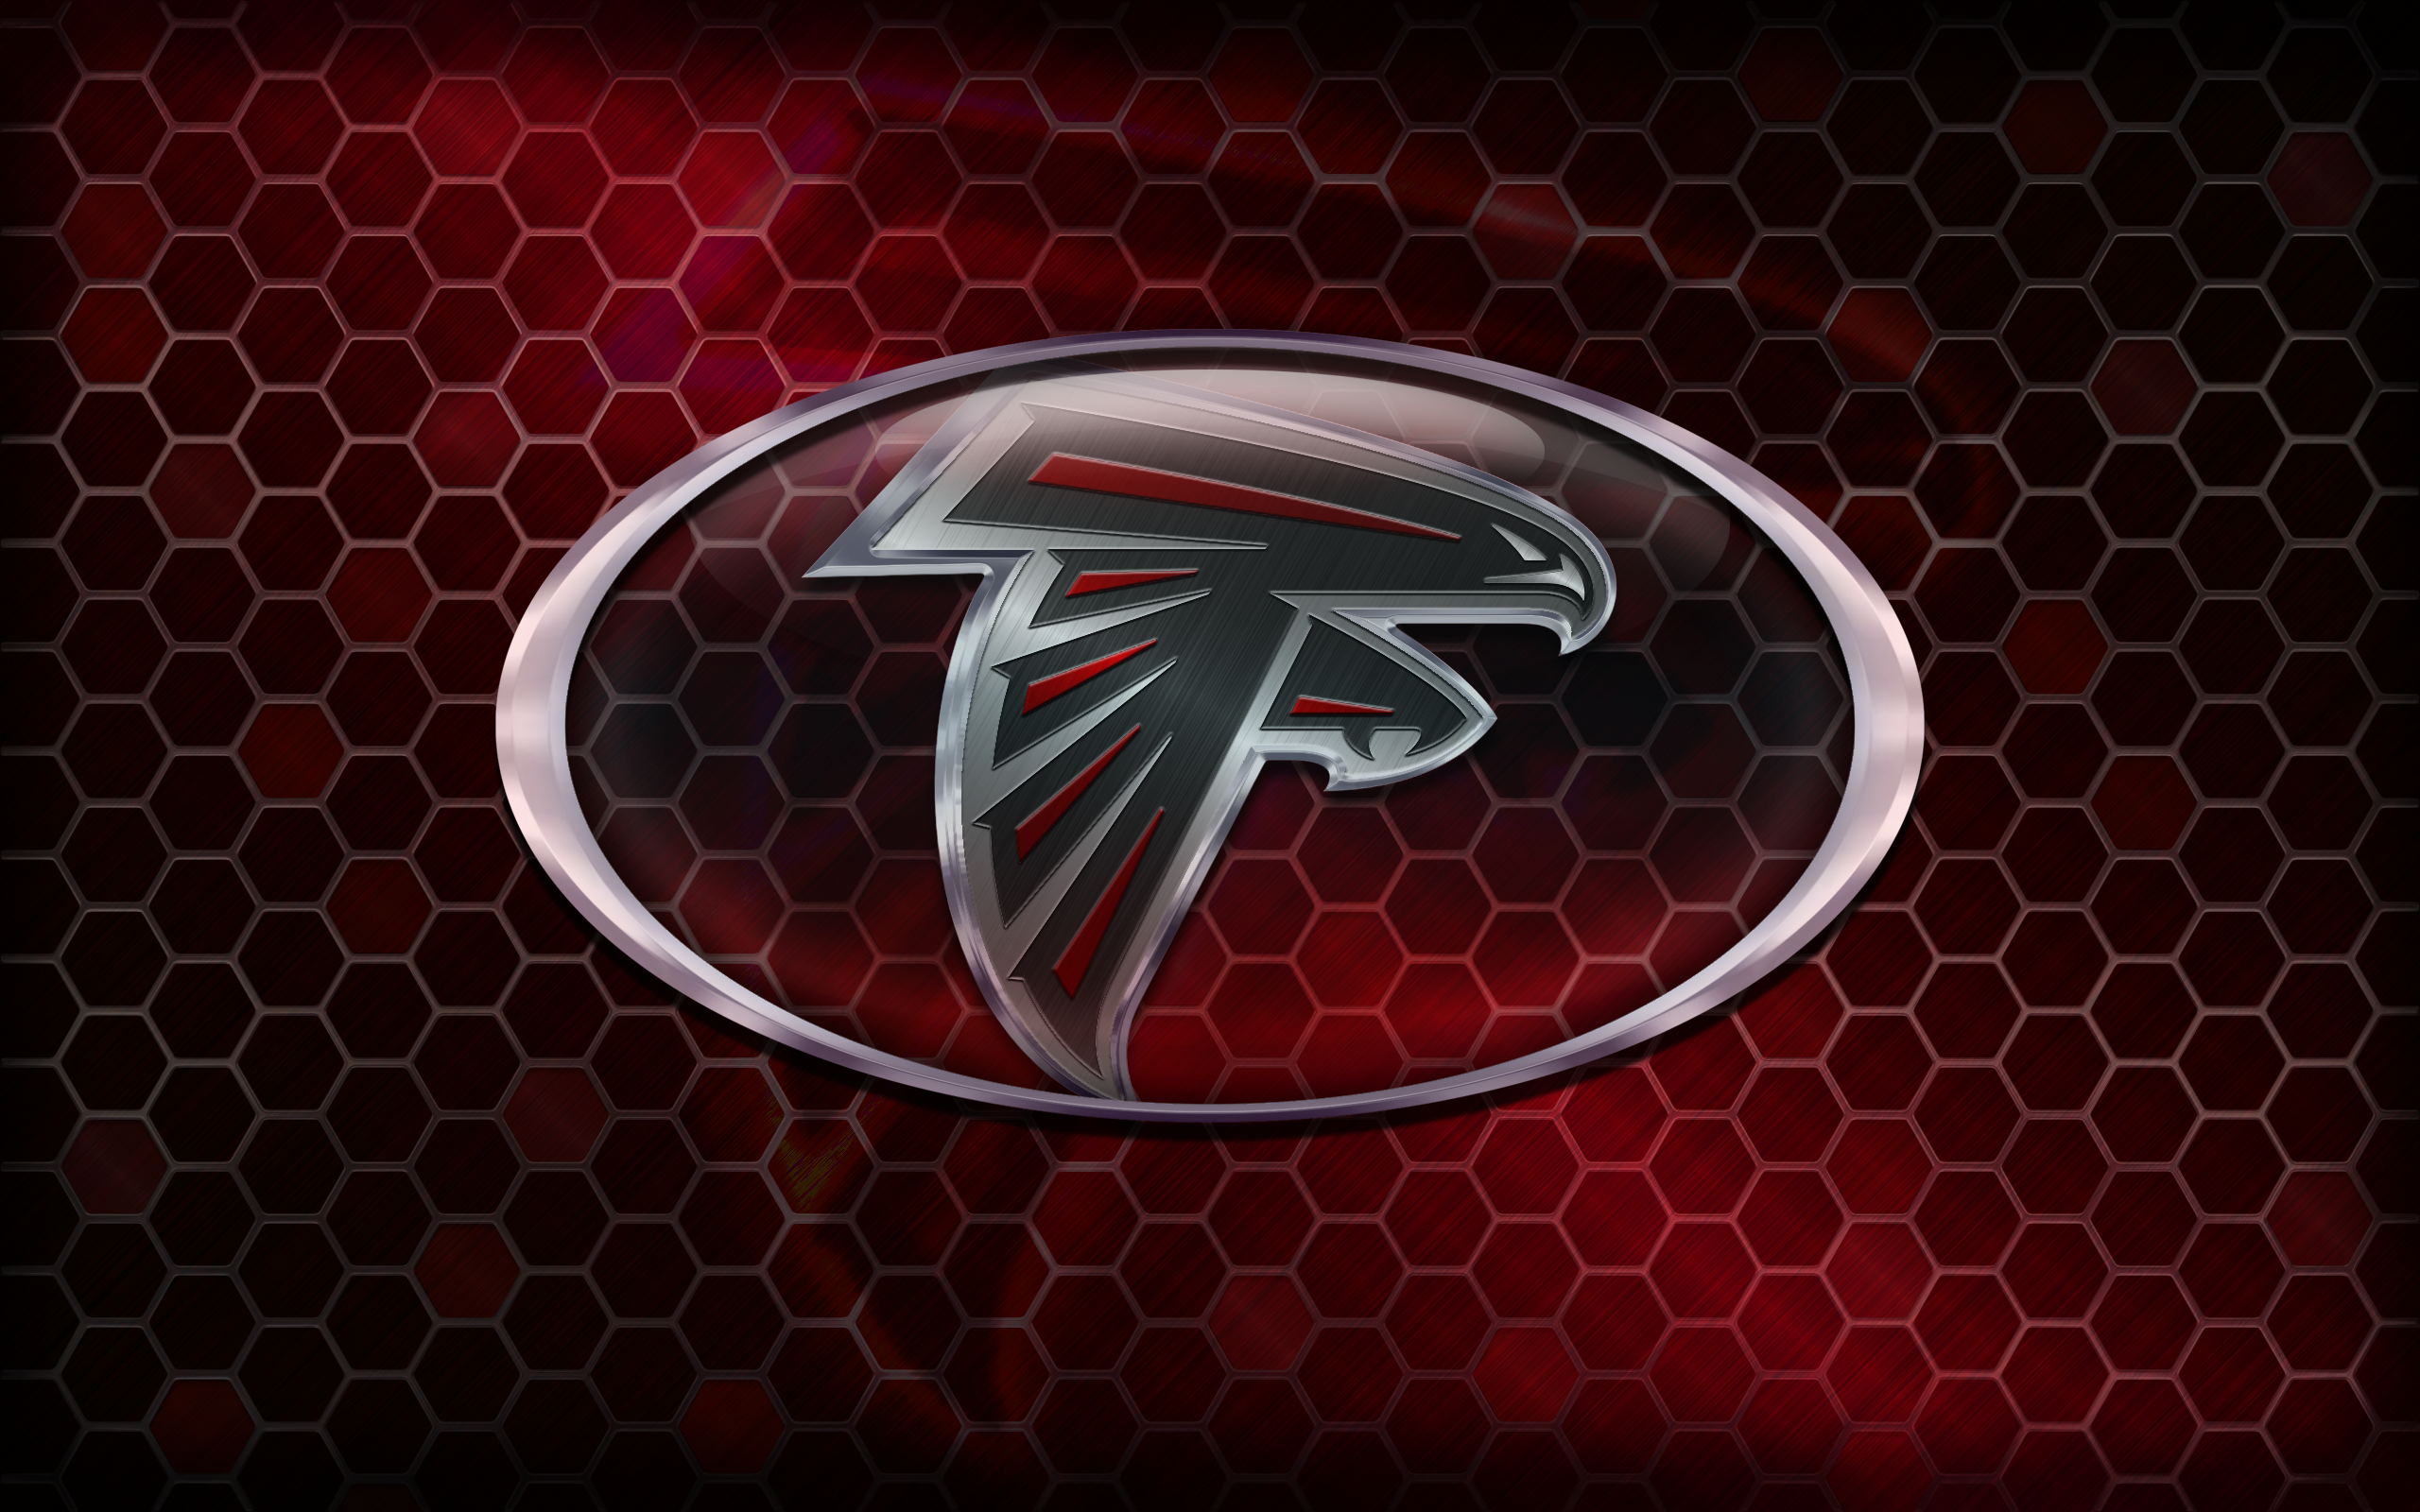 Atlanta Falcons Wallpapers Hd: 8 HD Atlanta Falcons Wallpapers